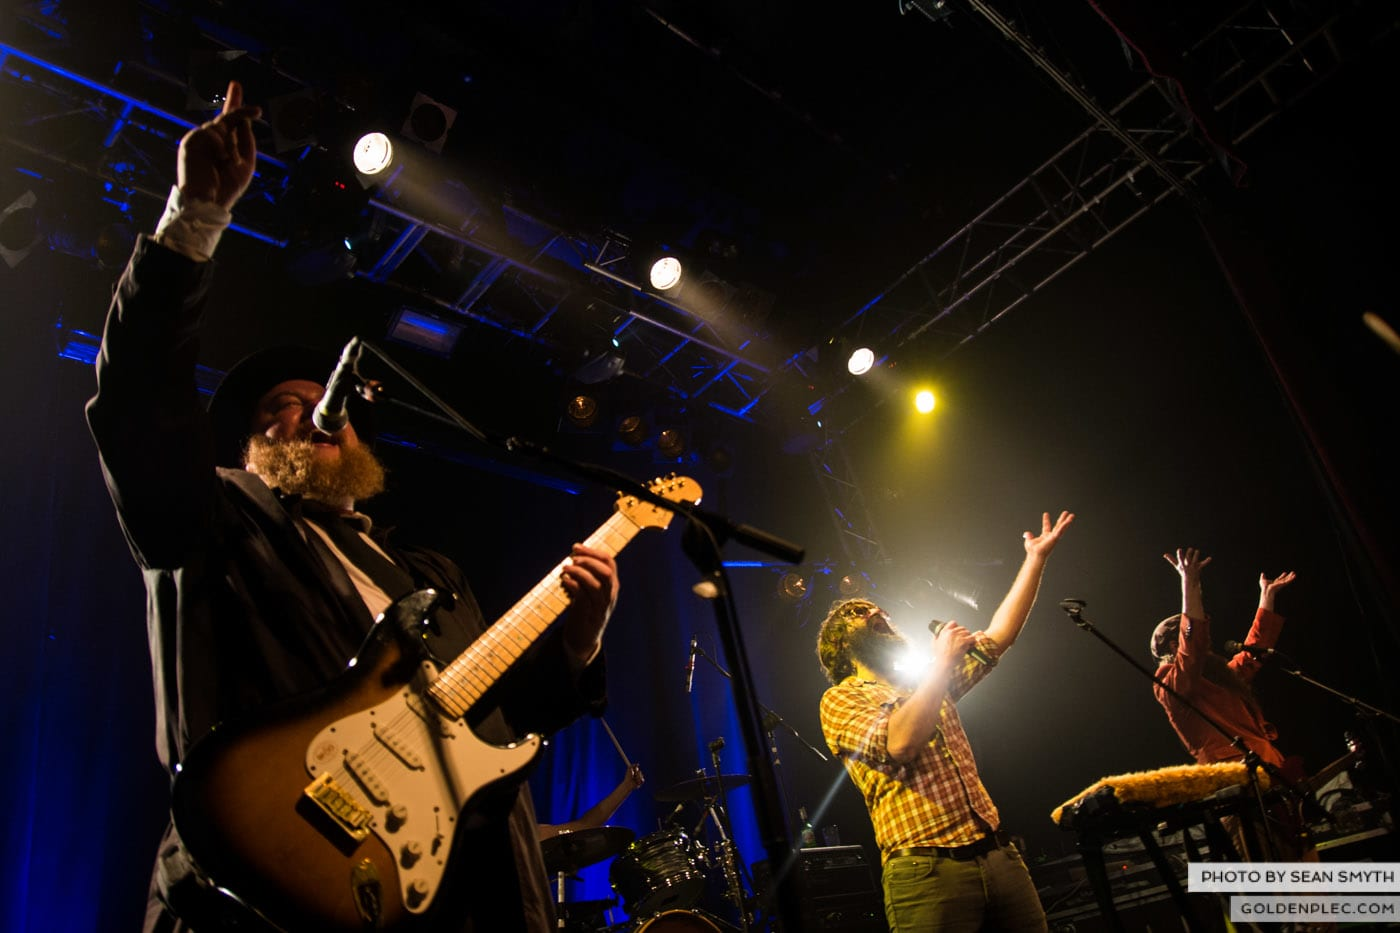 the-beards-at-button-factory-by-sean-smyth-10-12-14-48-of-49